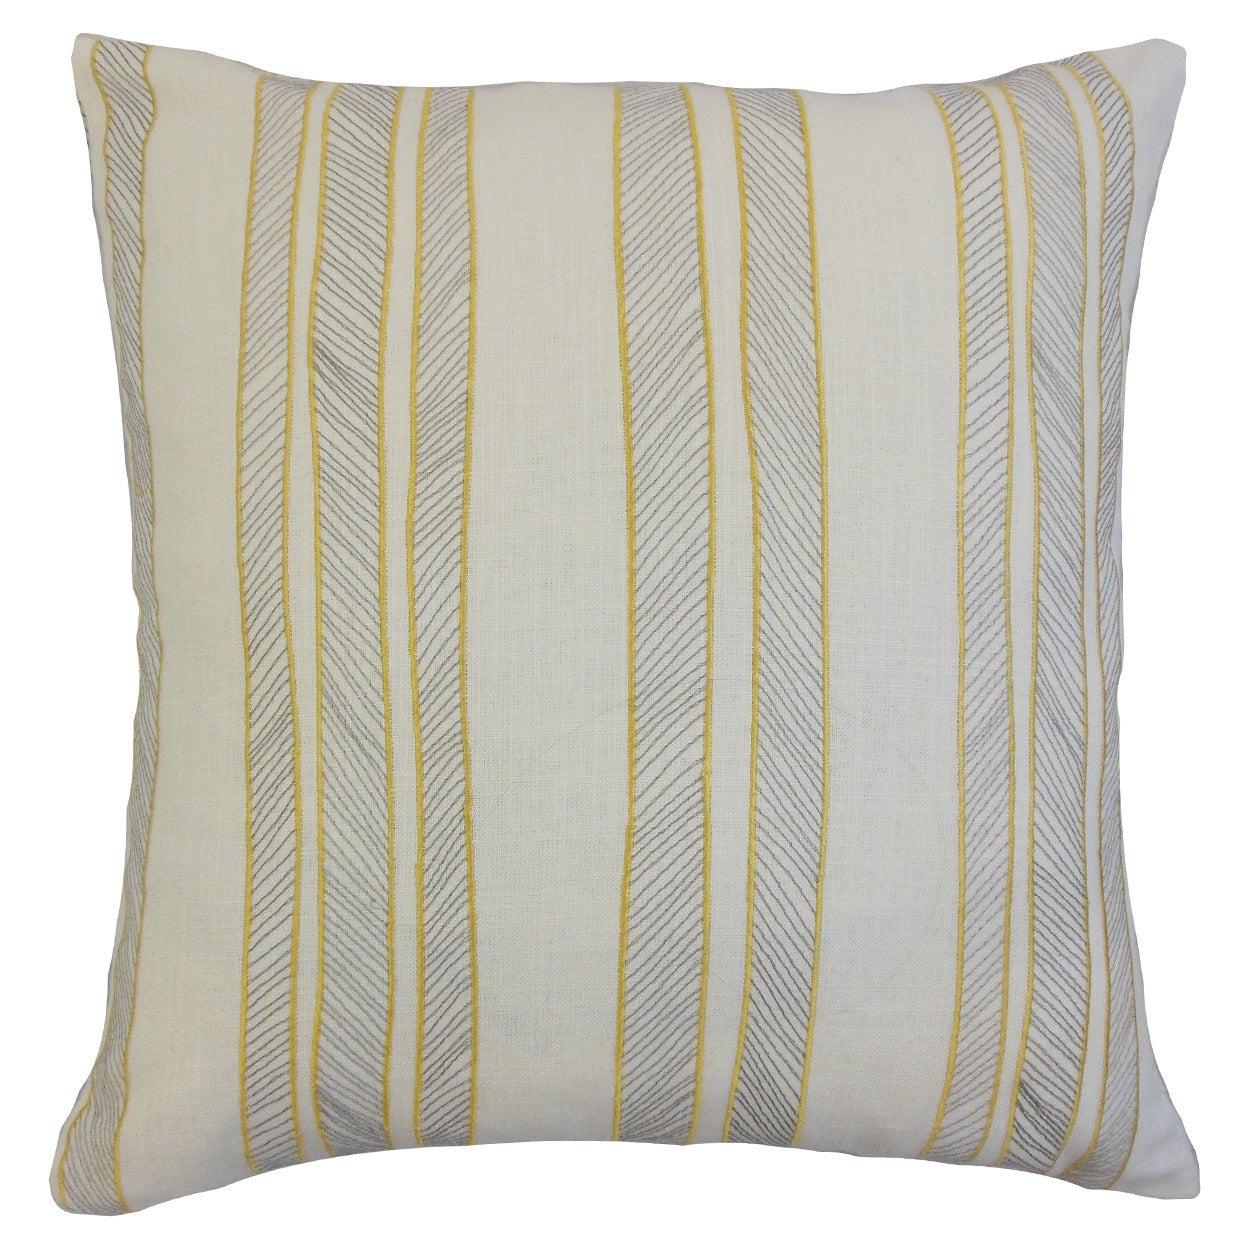 Drum Stripes Throw Pillow Cover Sunny (Size), Multi, Size...